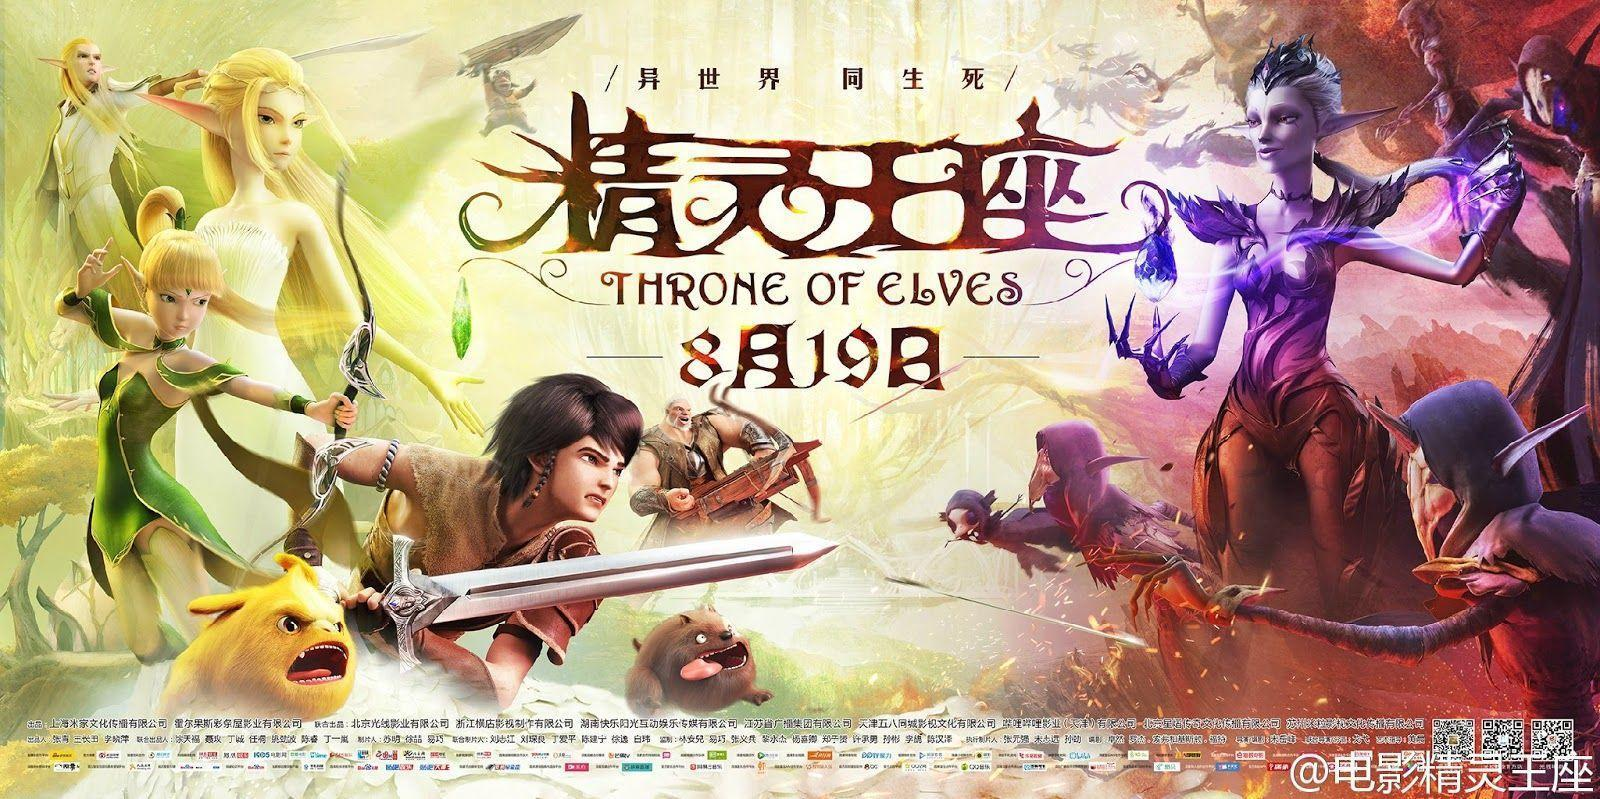 dragon nest throne of